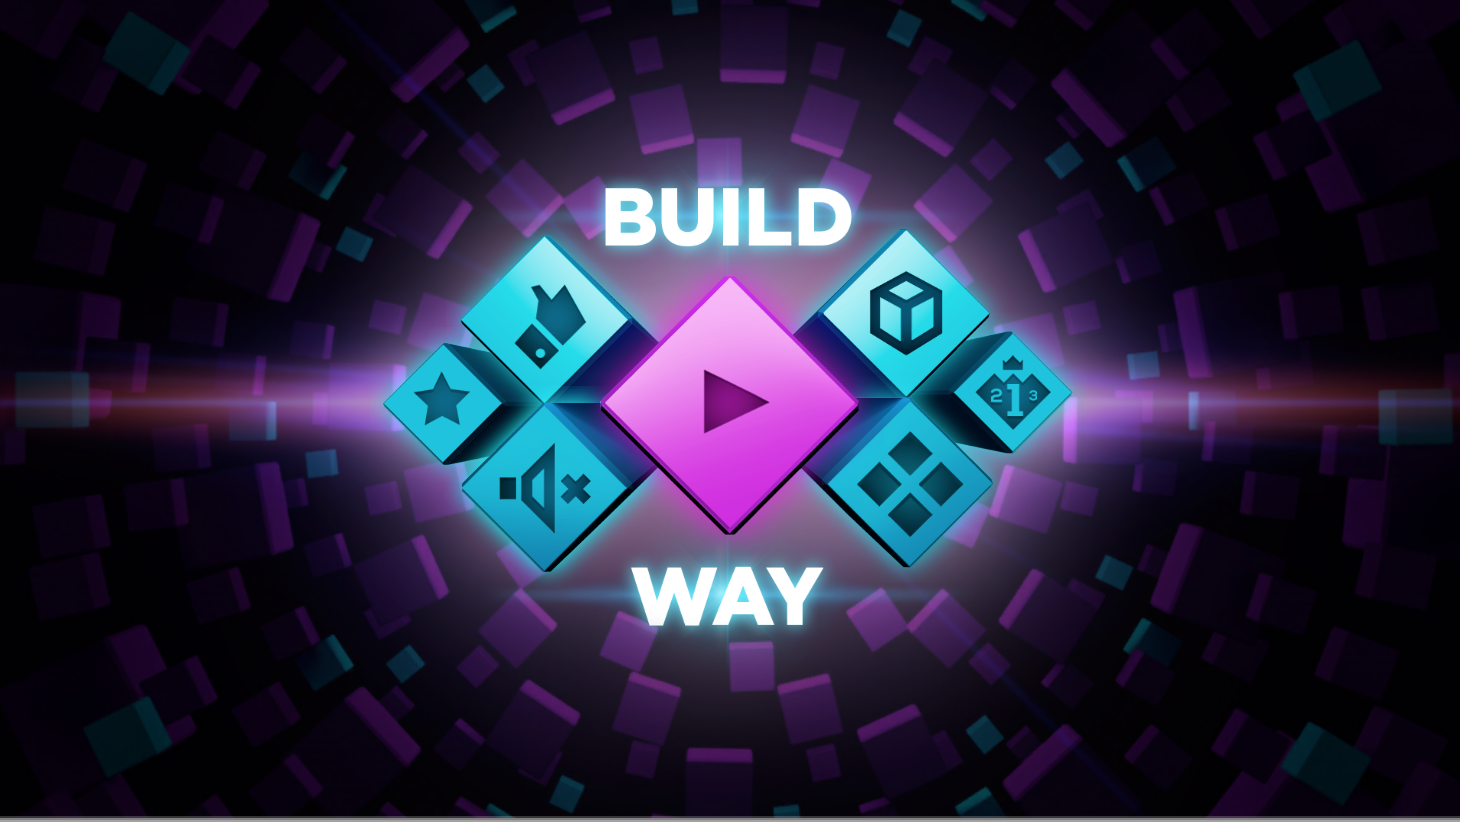 Cube runner&& try the games play